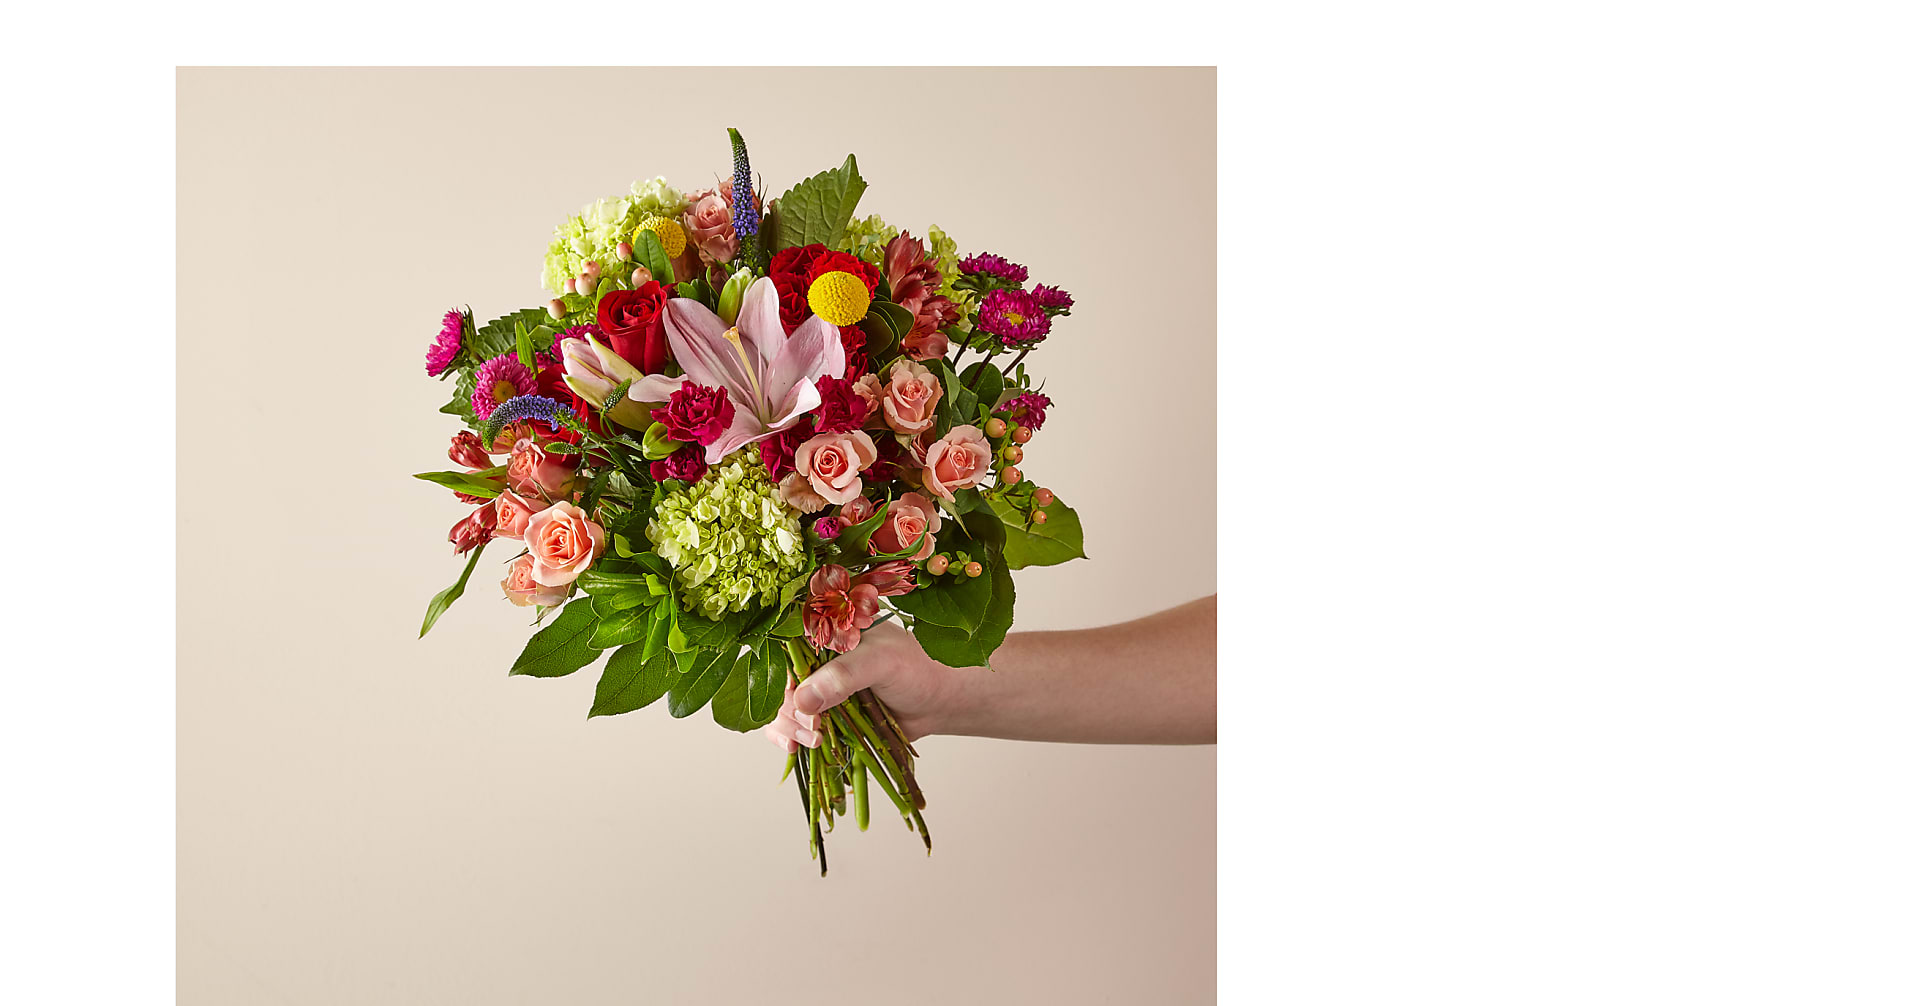 The Tayde Bouquet with St. Jude - Image 1 Of 3